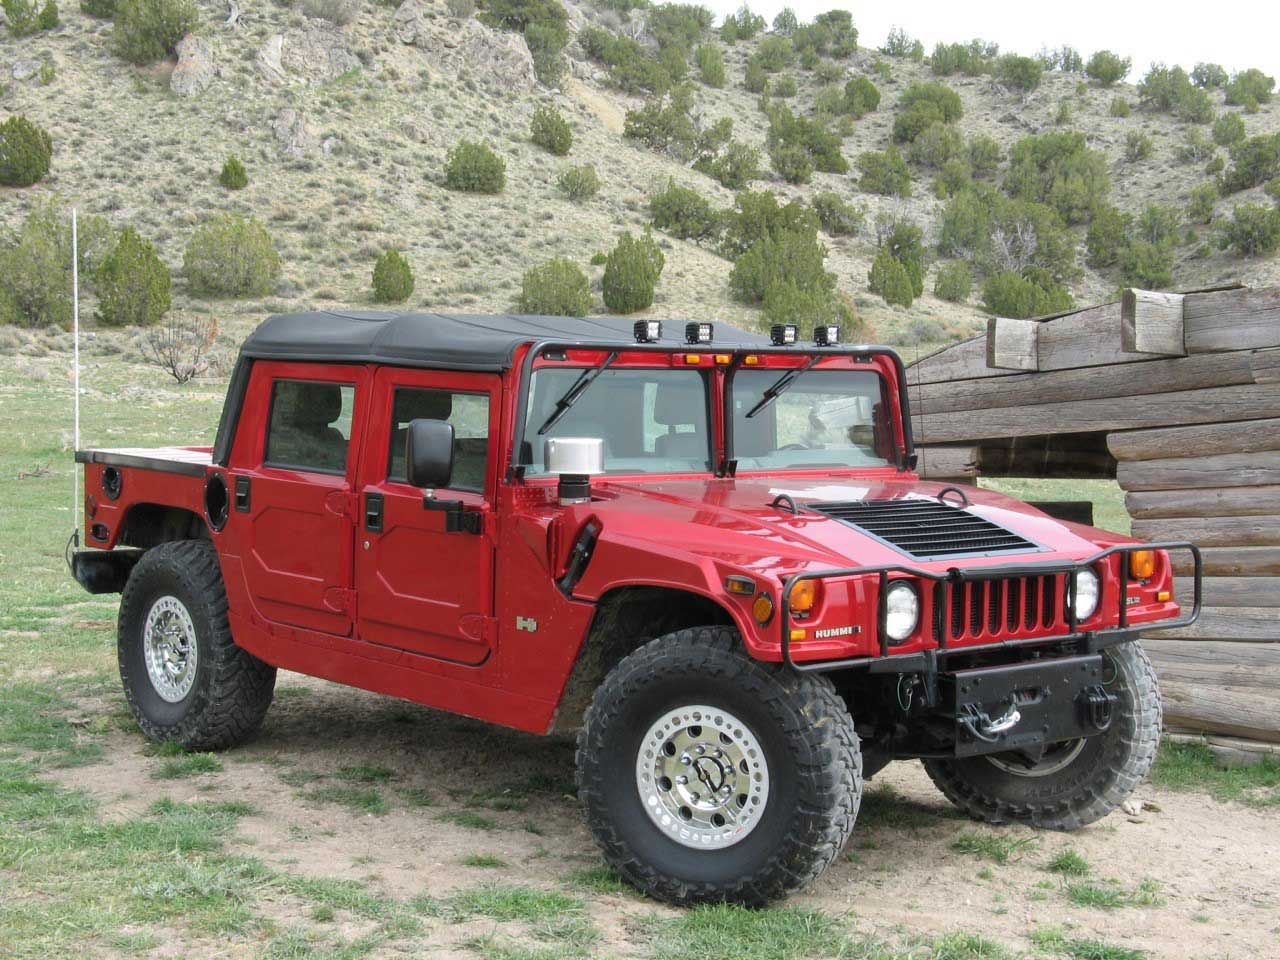 GT / Cepek - Hummer Tires - Offroad and Onroad